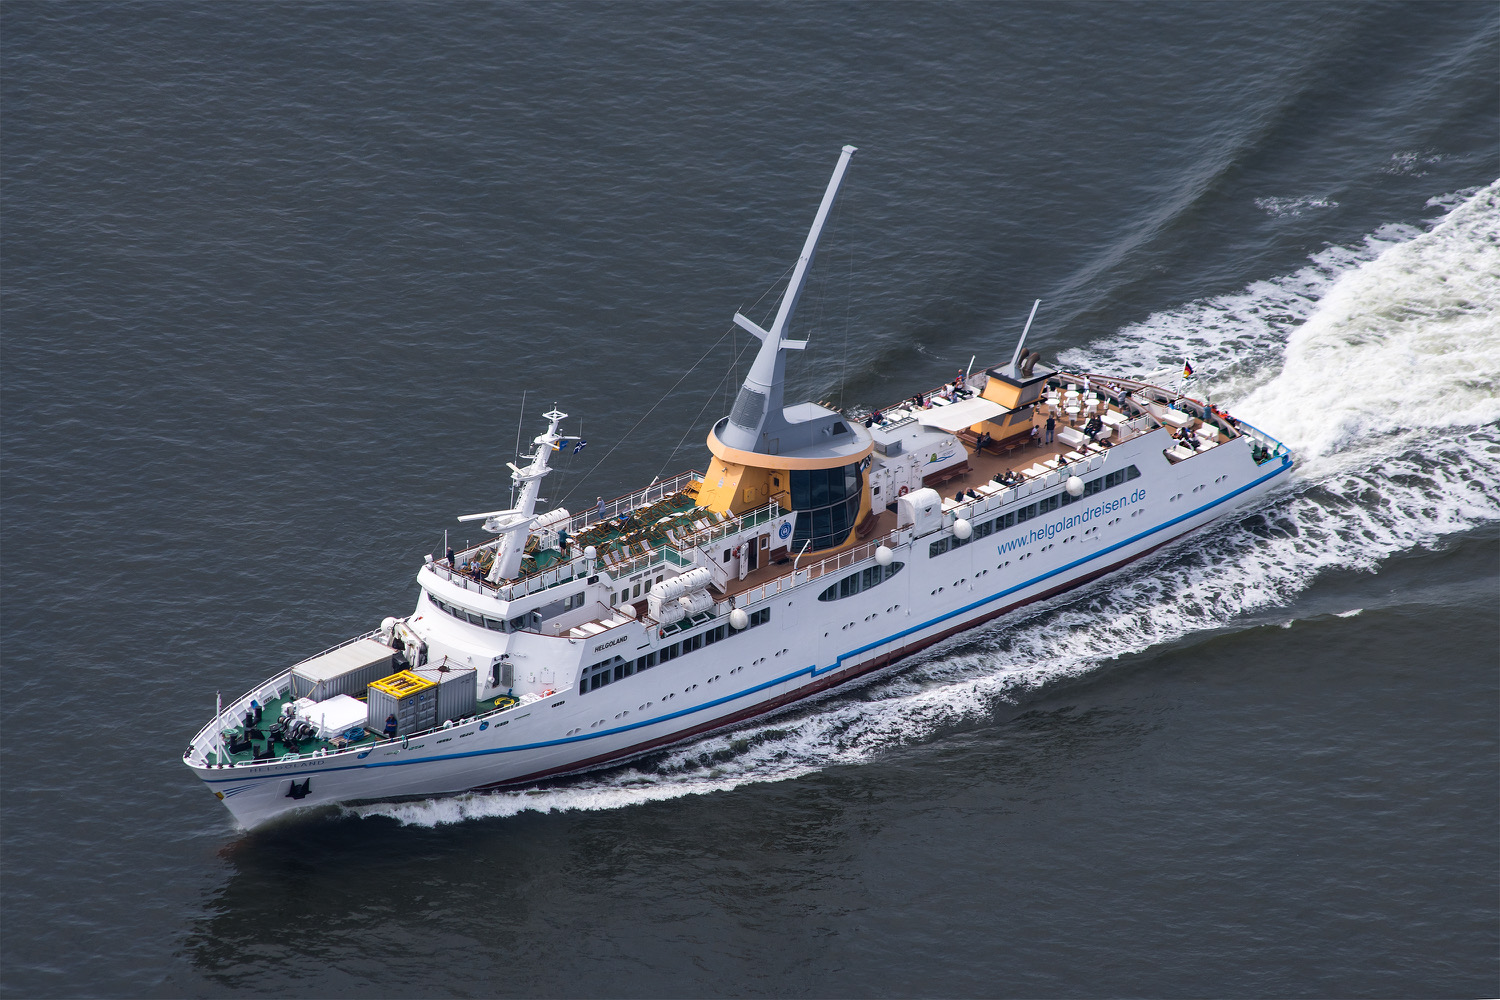 MS Helgoland auf See